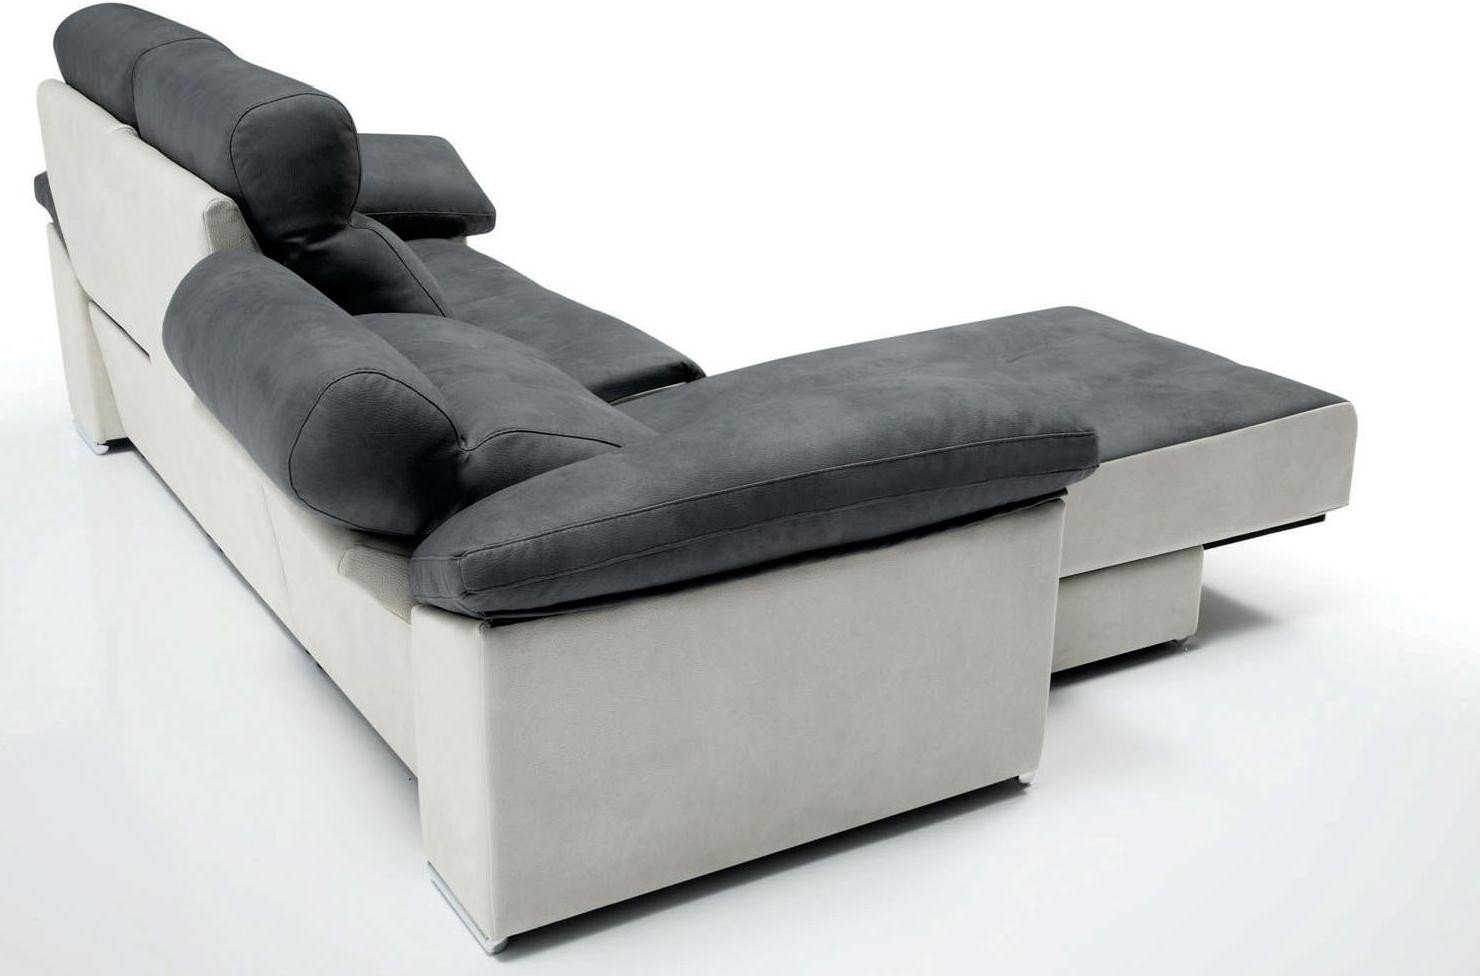 Sof con chaise longue relax con motor bianchi muebles for Sofas relax con motor